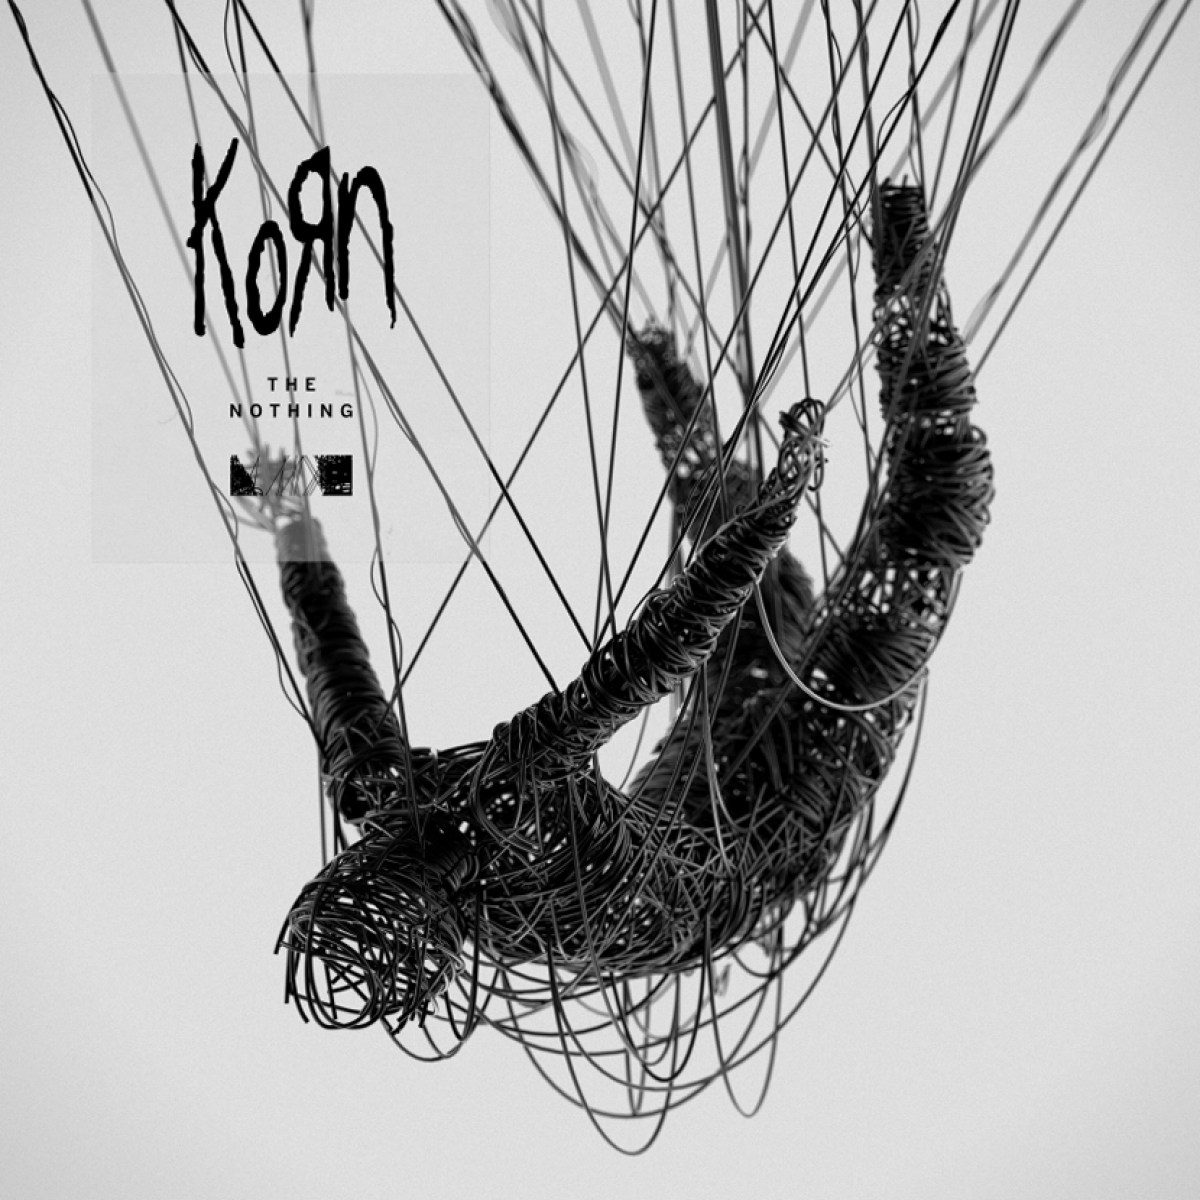 korn the nothing album cover